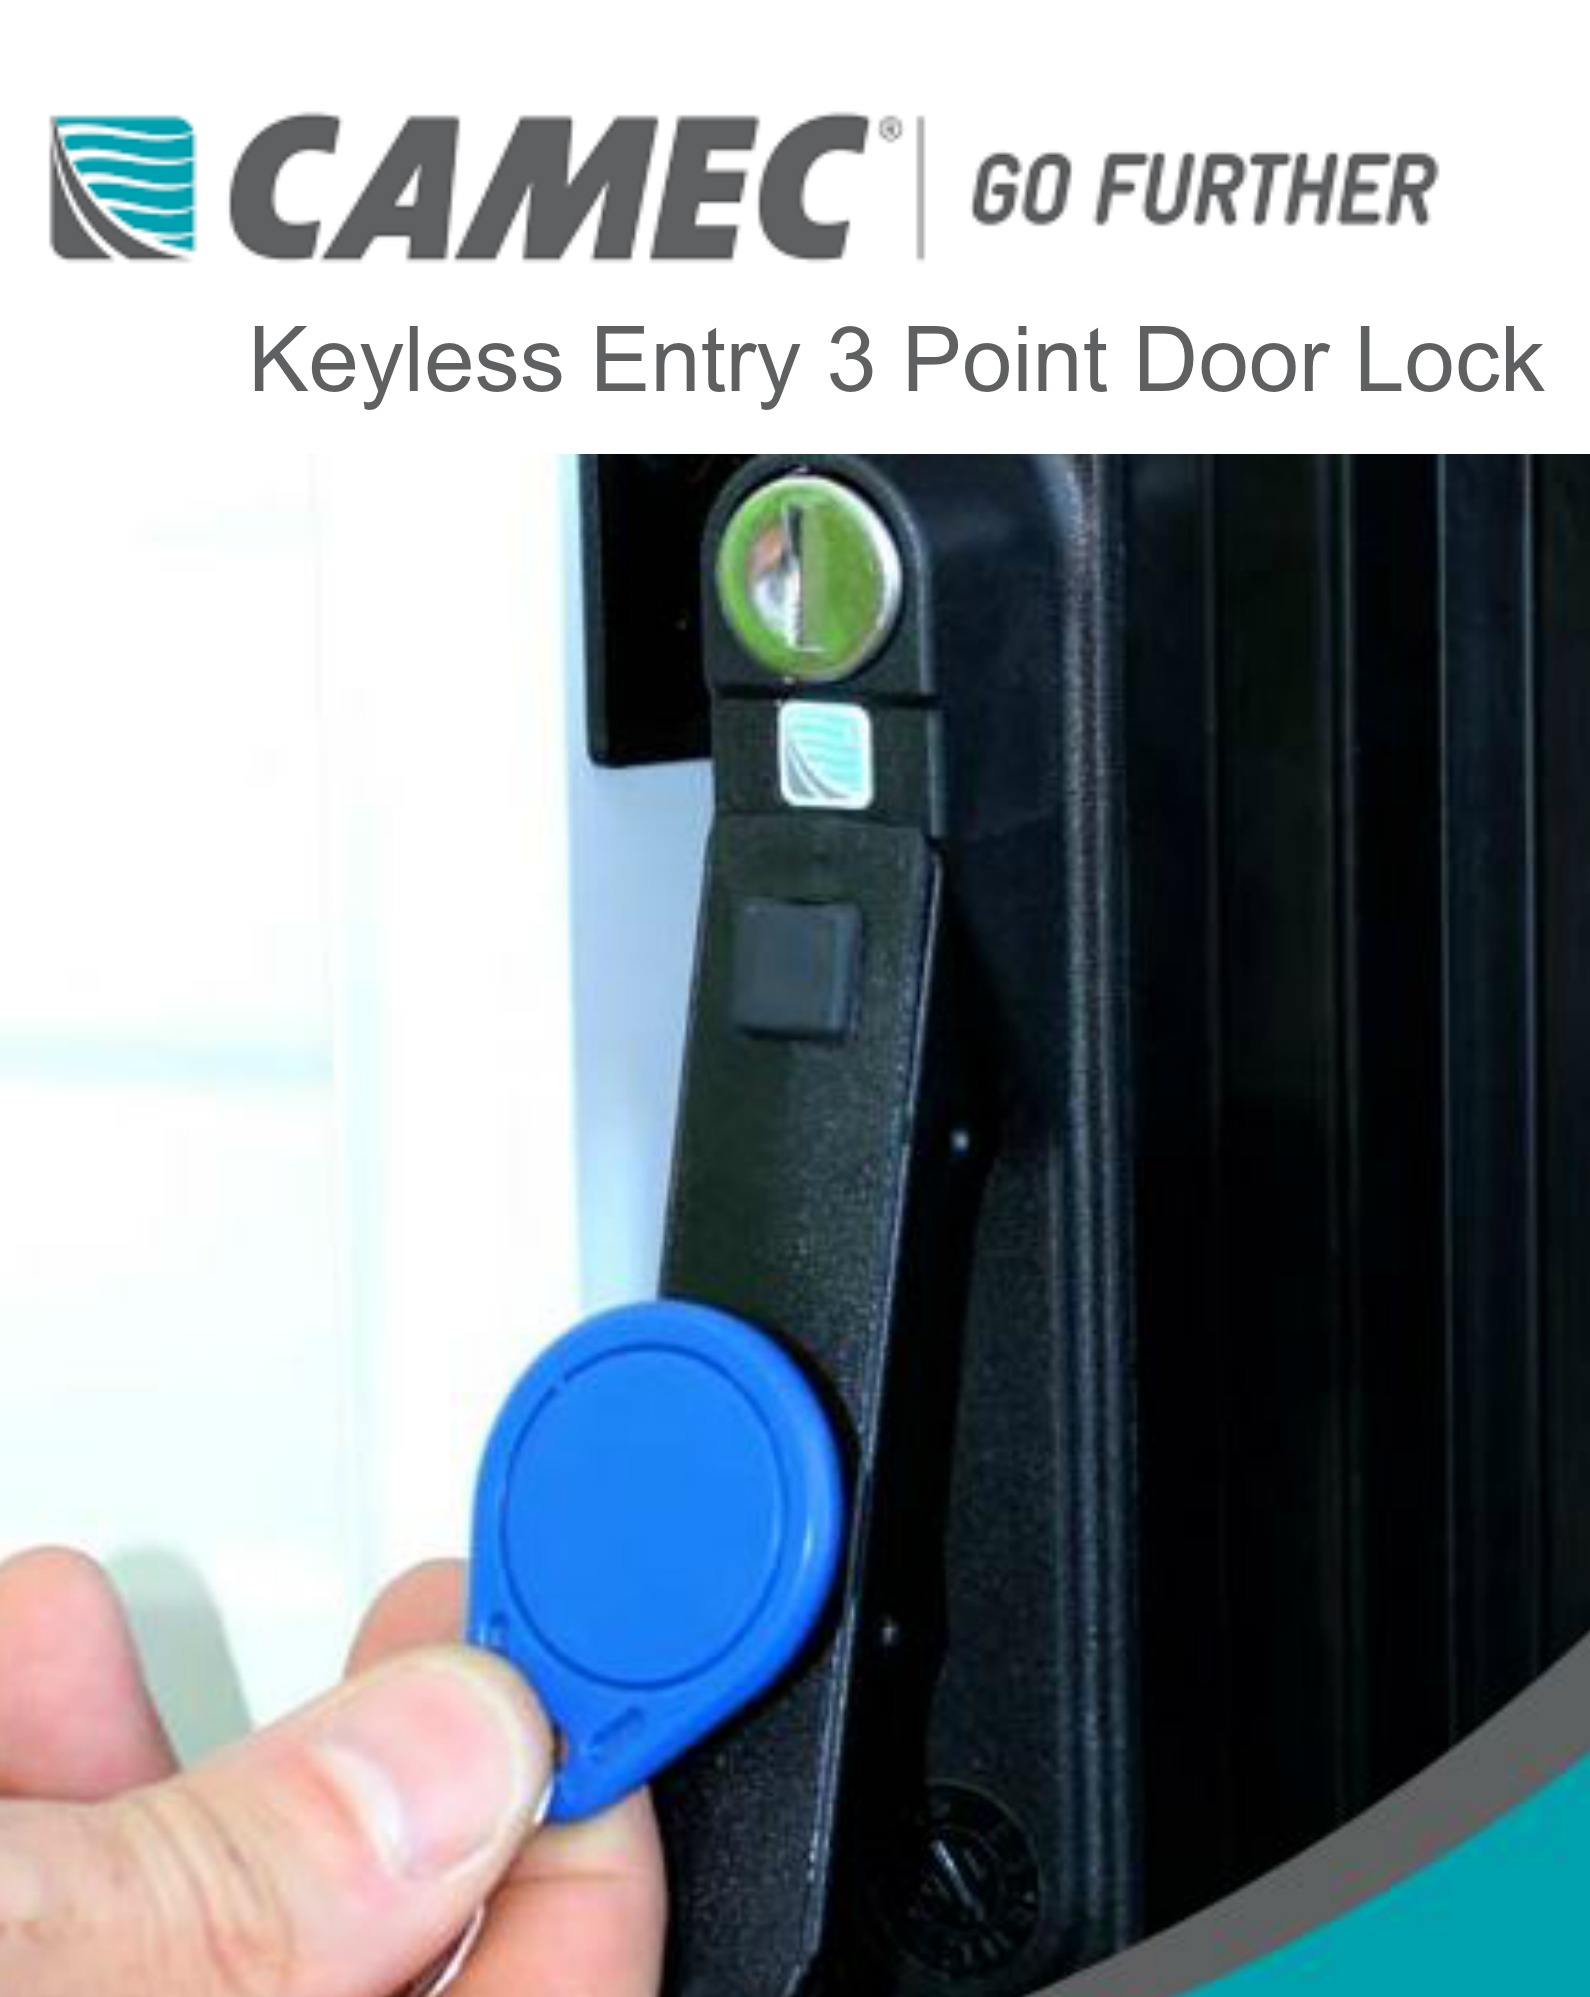 Camec Keyless Entry 3 Point Main Door Lock & Camec Keyless Entry 3 Point Main Door Lock - Suncoast Caravan Service